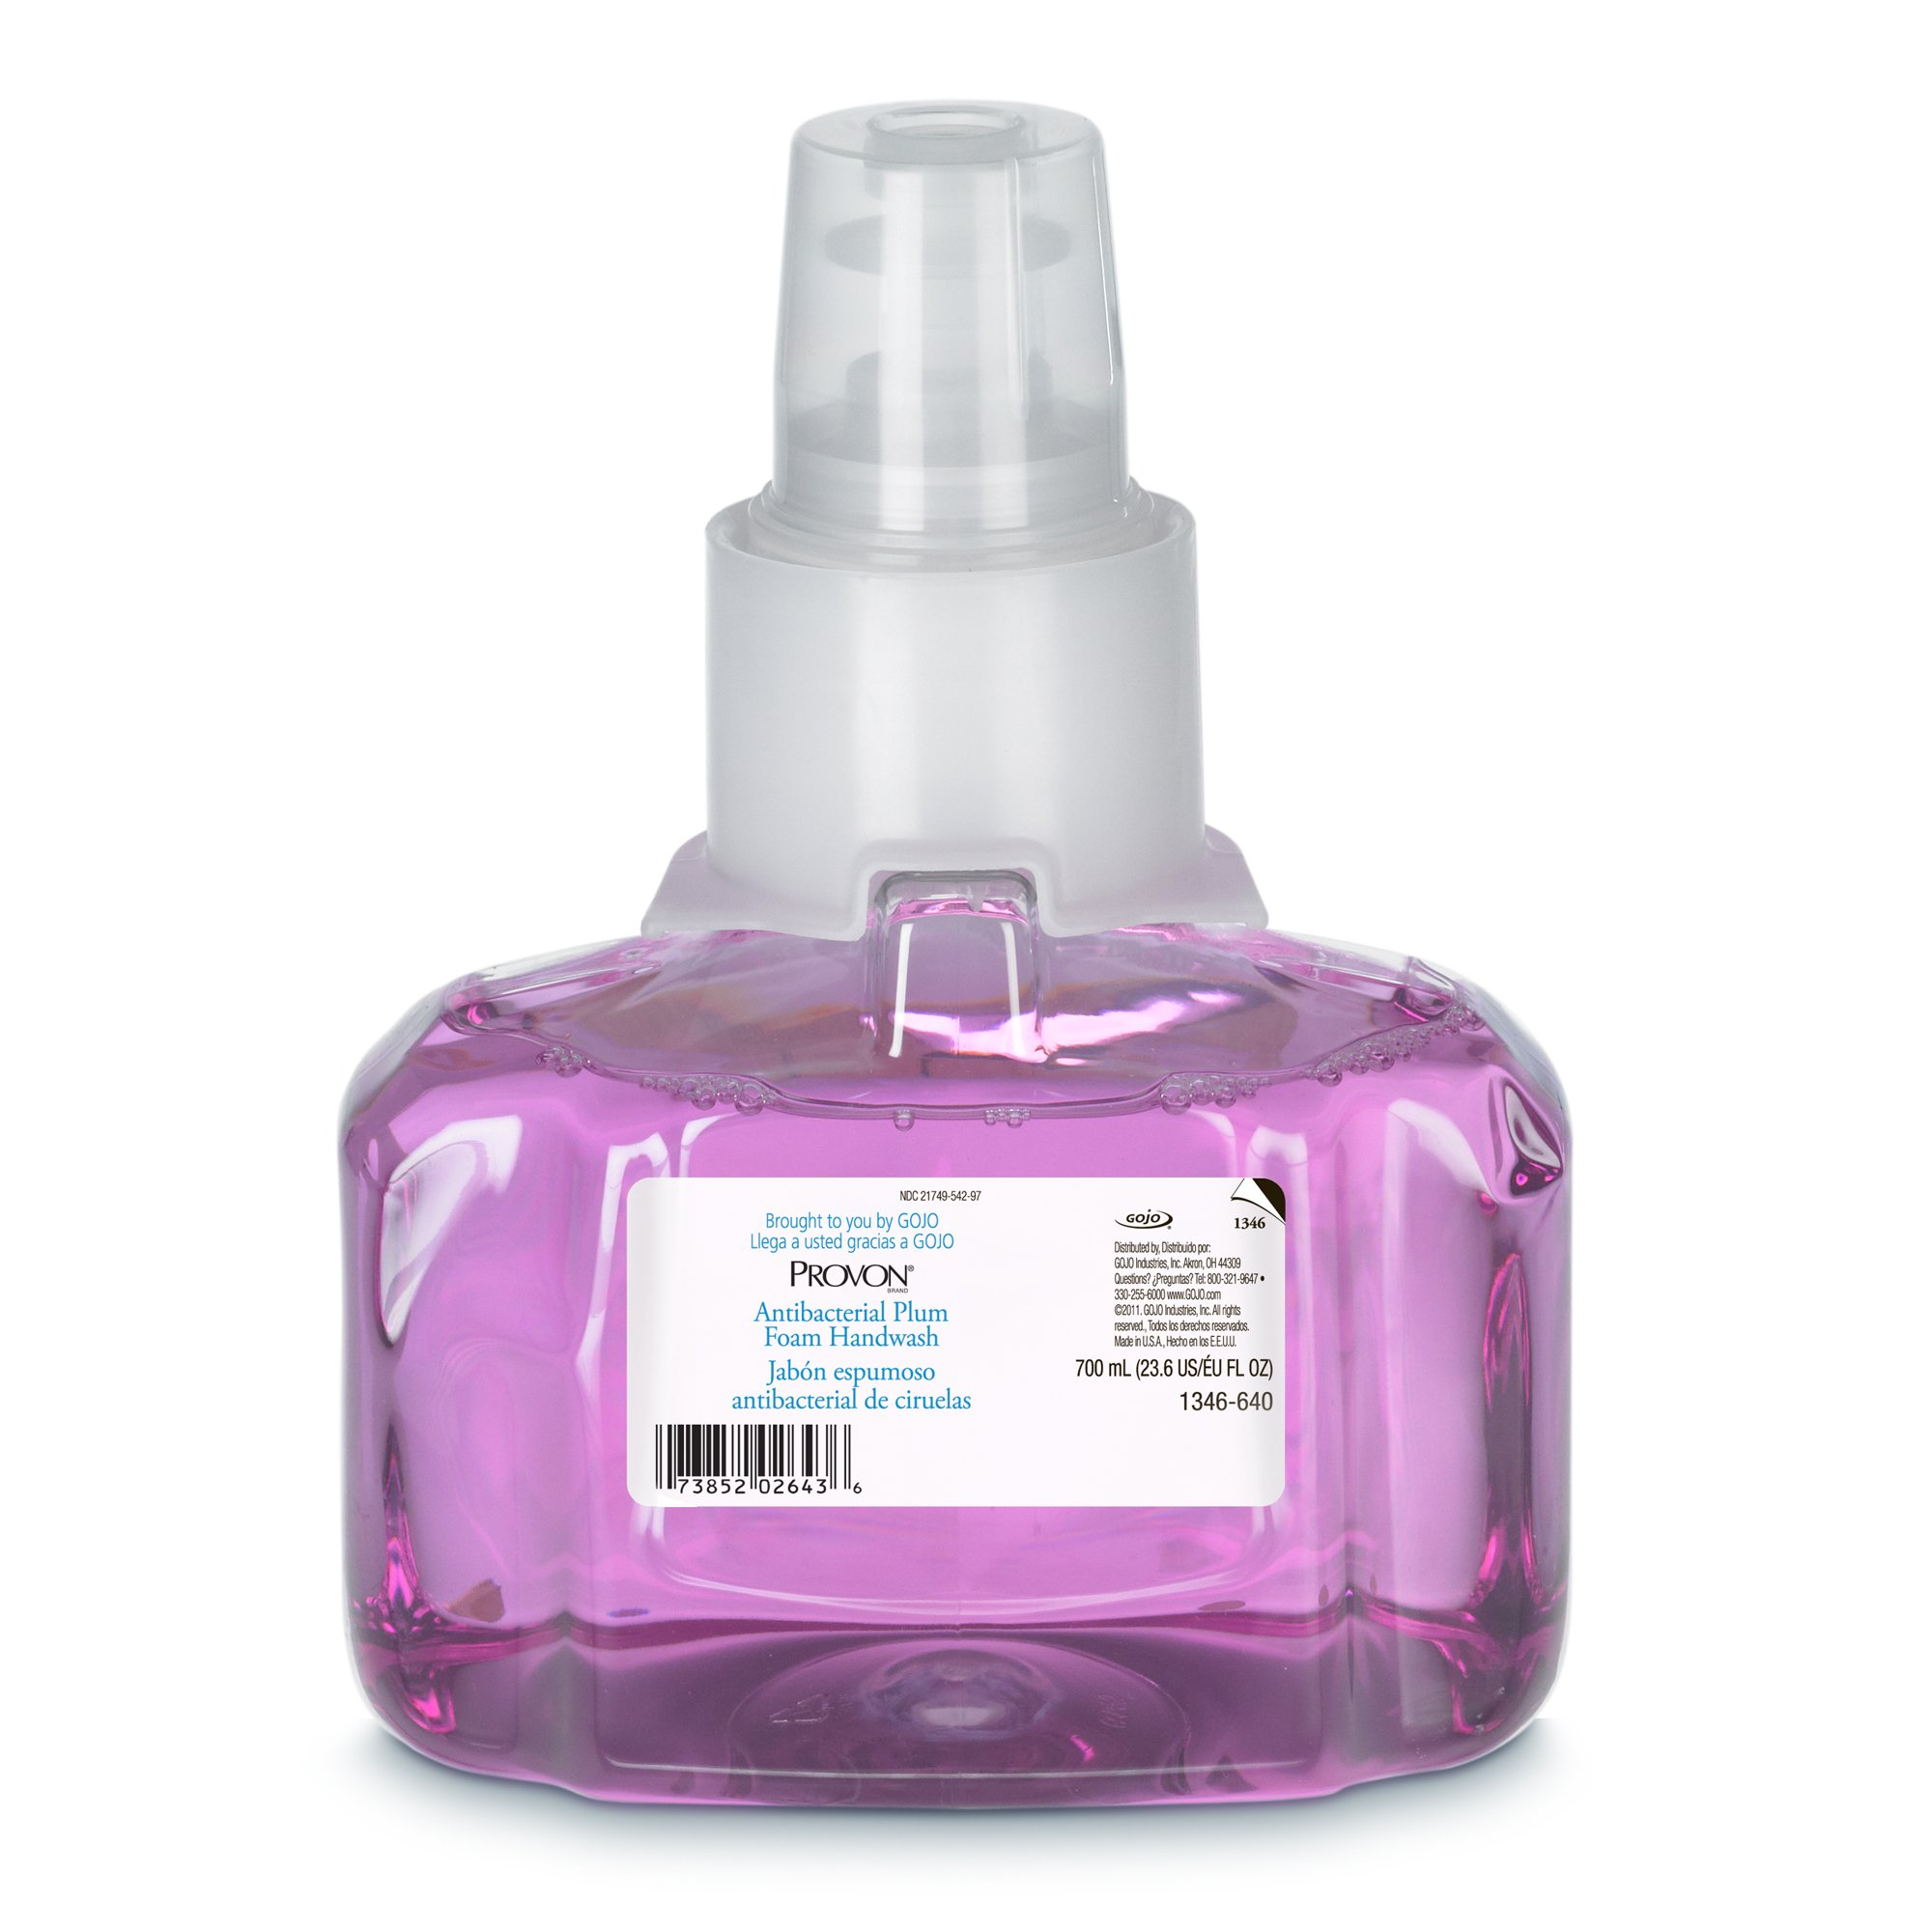 PROVON LTX-7 Antibacterial Plum Foam Handwash, Plum Fragrance, 700 mL Handwash Refill for PROVON LTX-7 Touch-Free Dispenser (Pack of 3) - 1346-03